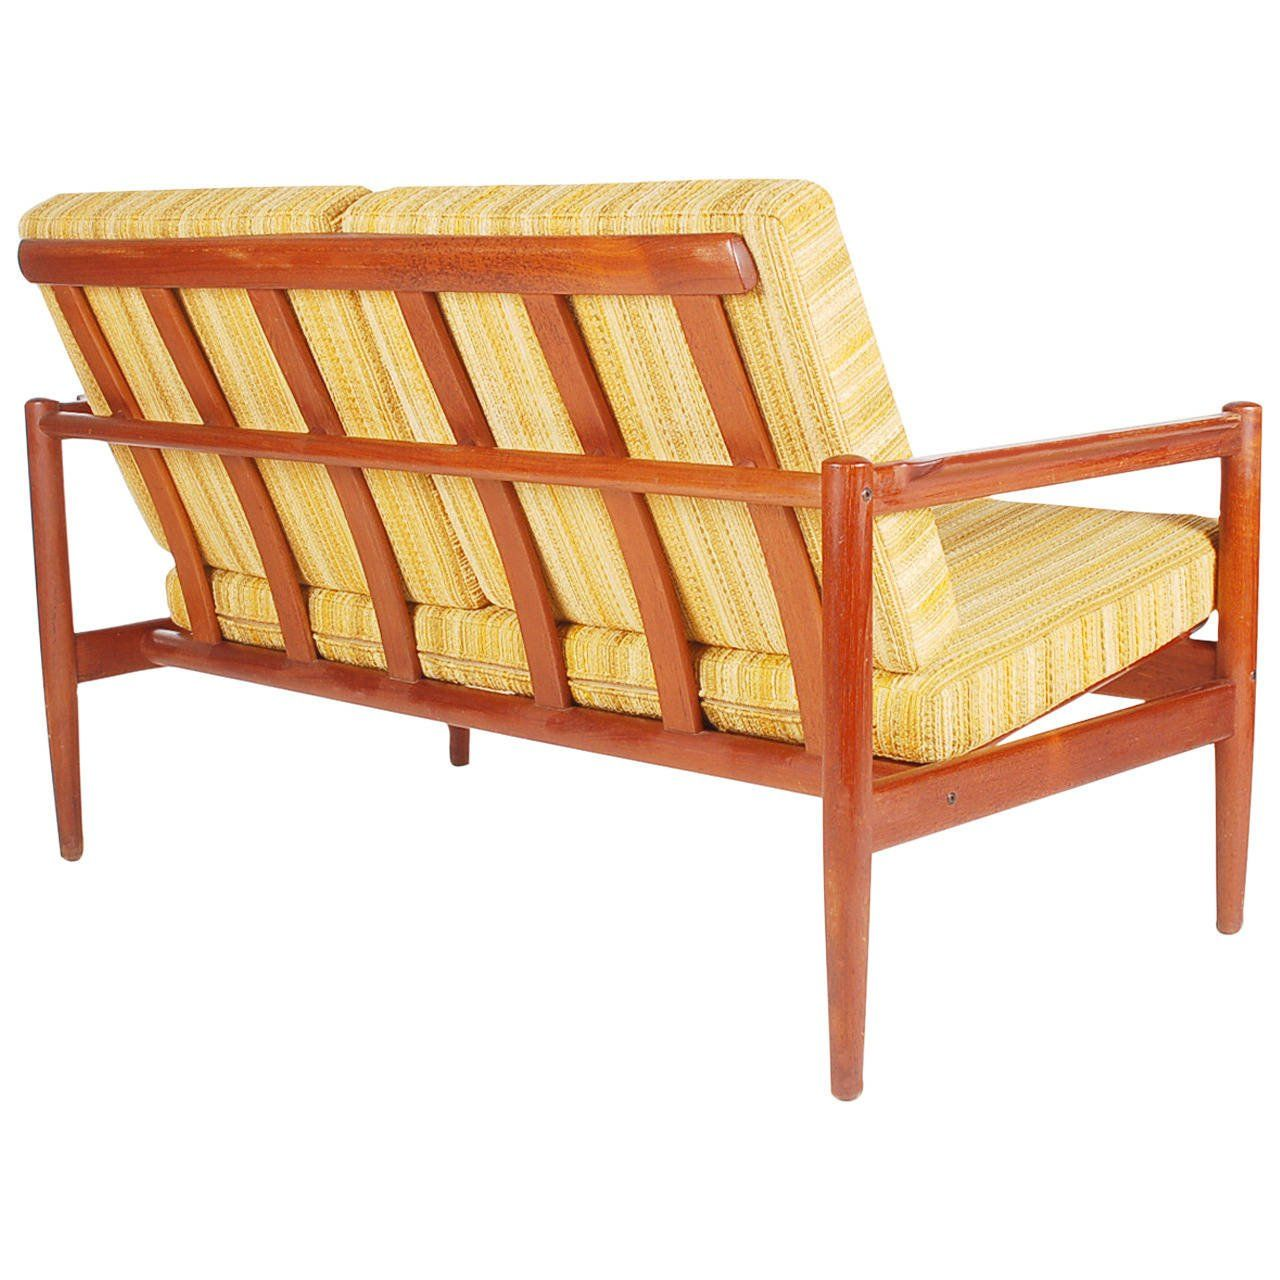 Flexsteel Sofa For Sale on A beautifully designed and crafted sofa by Borge Jensen It features solid teak frame and original upholstery Manufacturers stamp is present